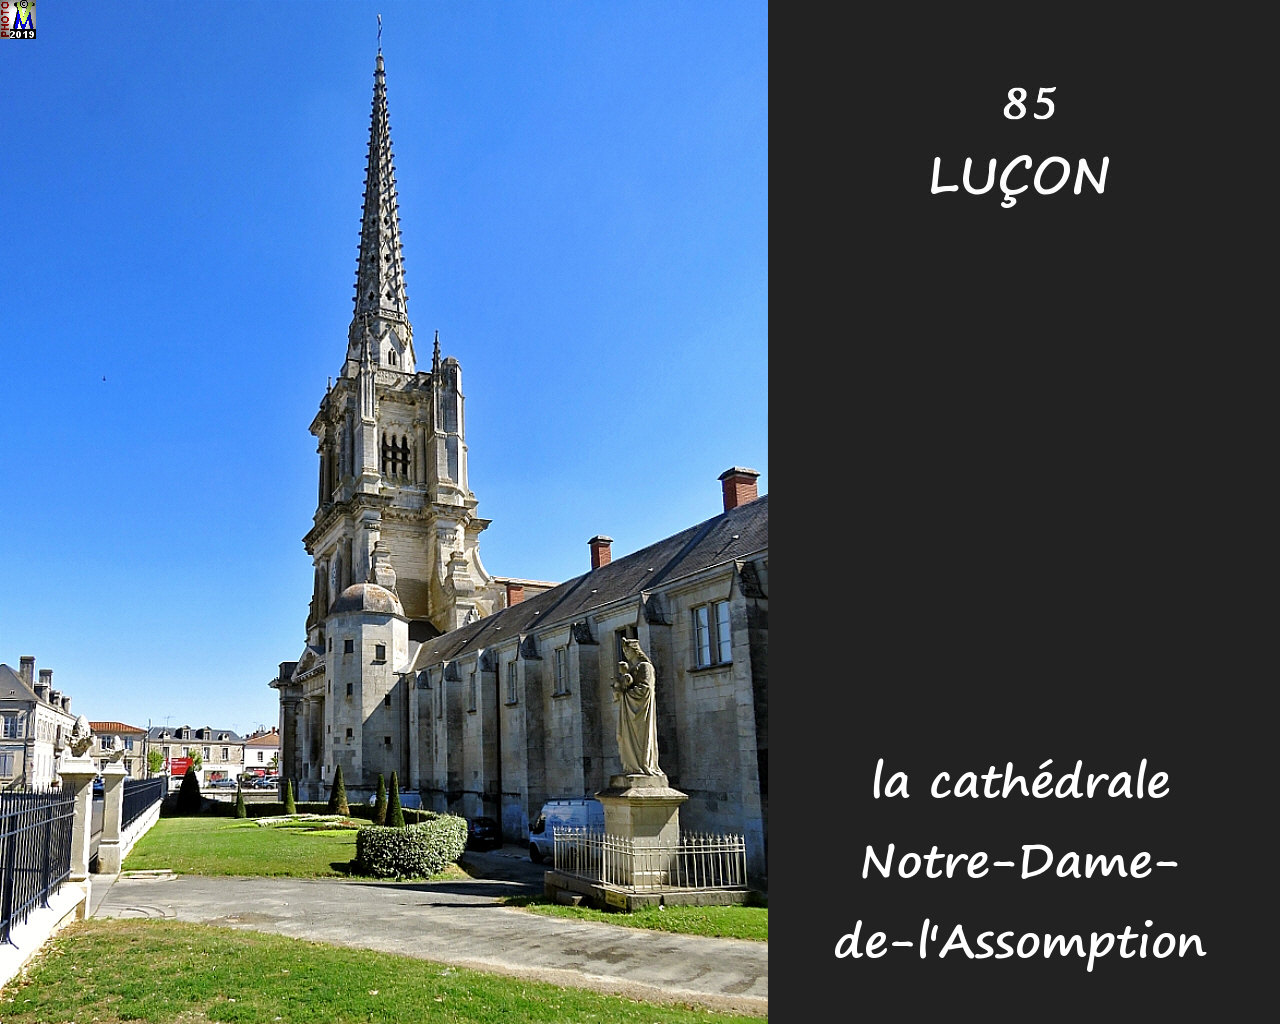 85LUCON_cathedrale_108.jpg